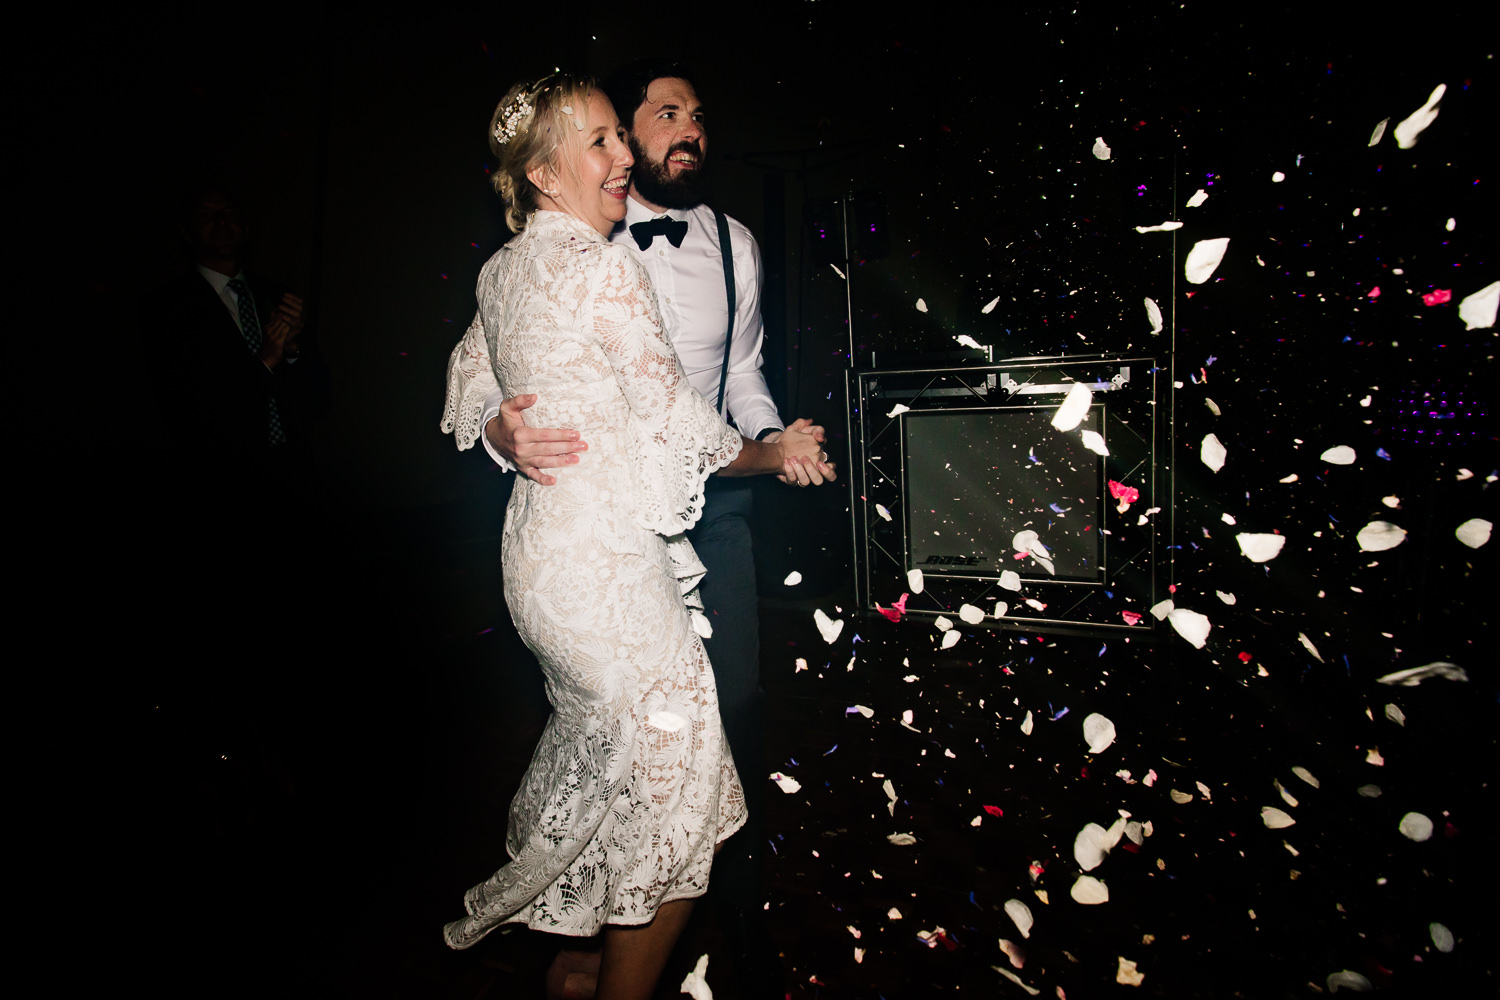 Kate and Sean Tipi Anglesey Wales Wedding Photographer-153.jpg